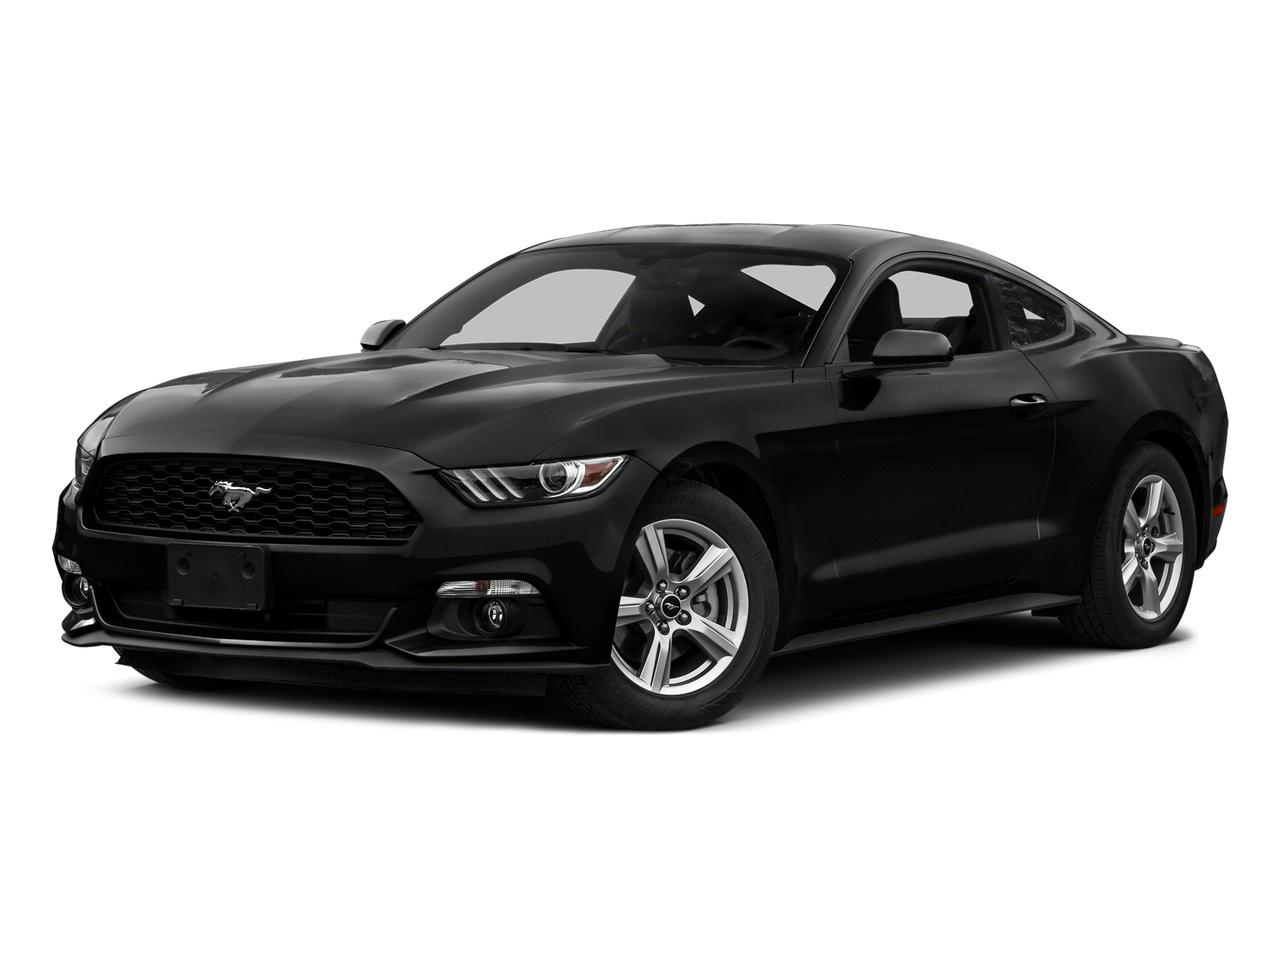 2015 Ford Mustang Vehicle Photo in Killeen, TX 76541